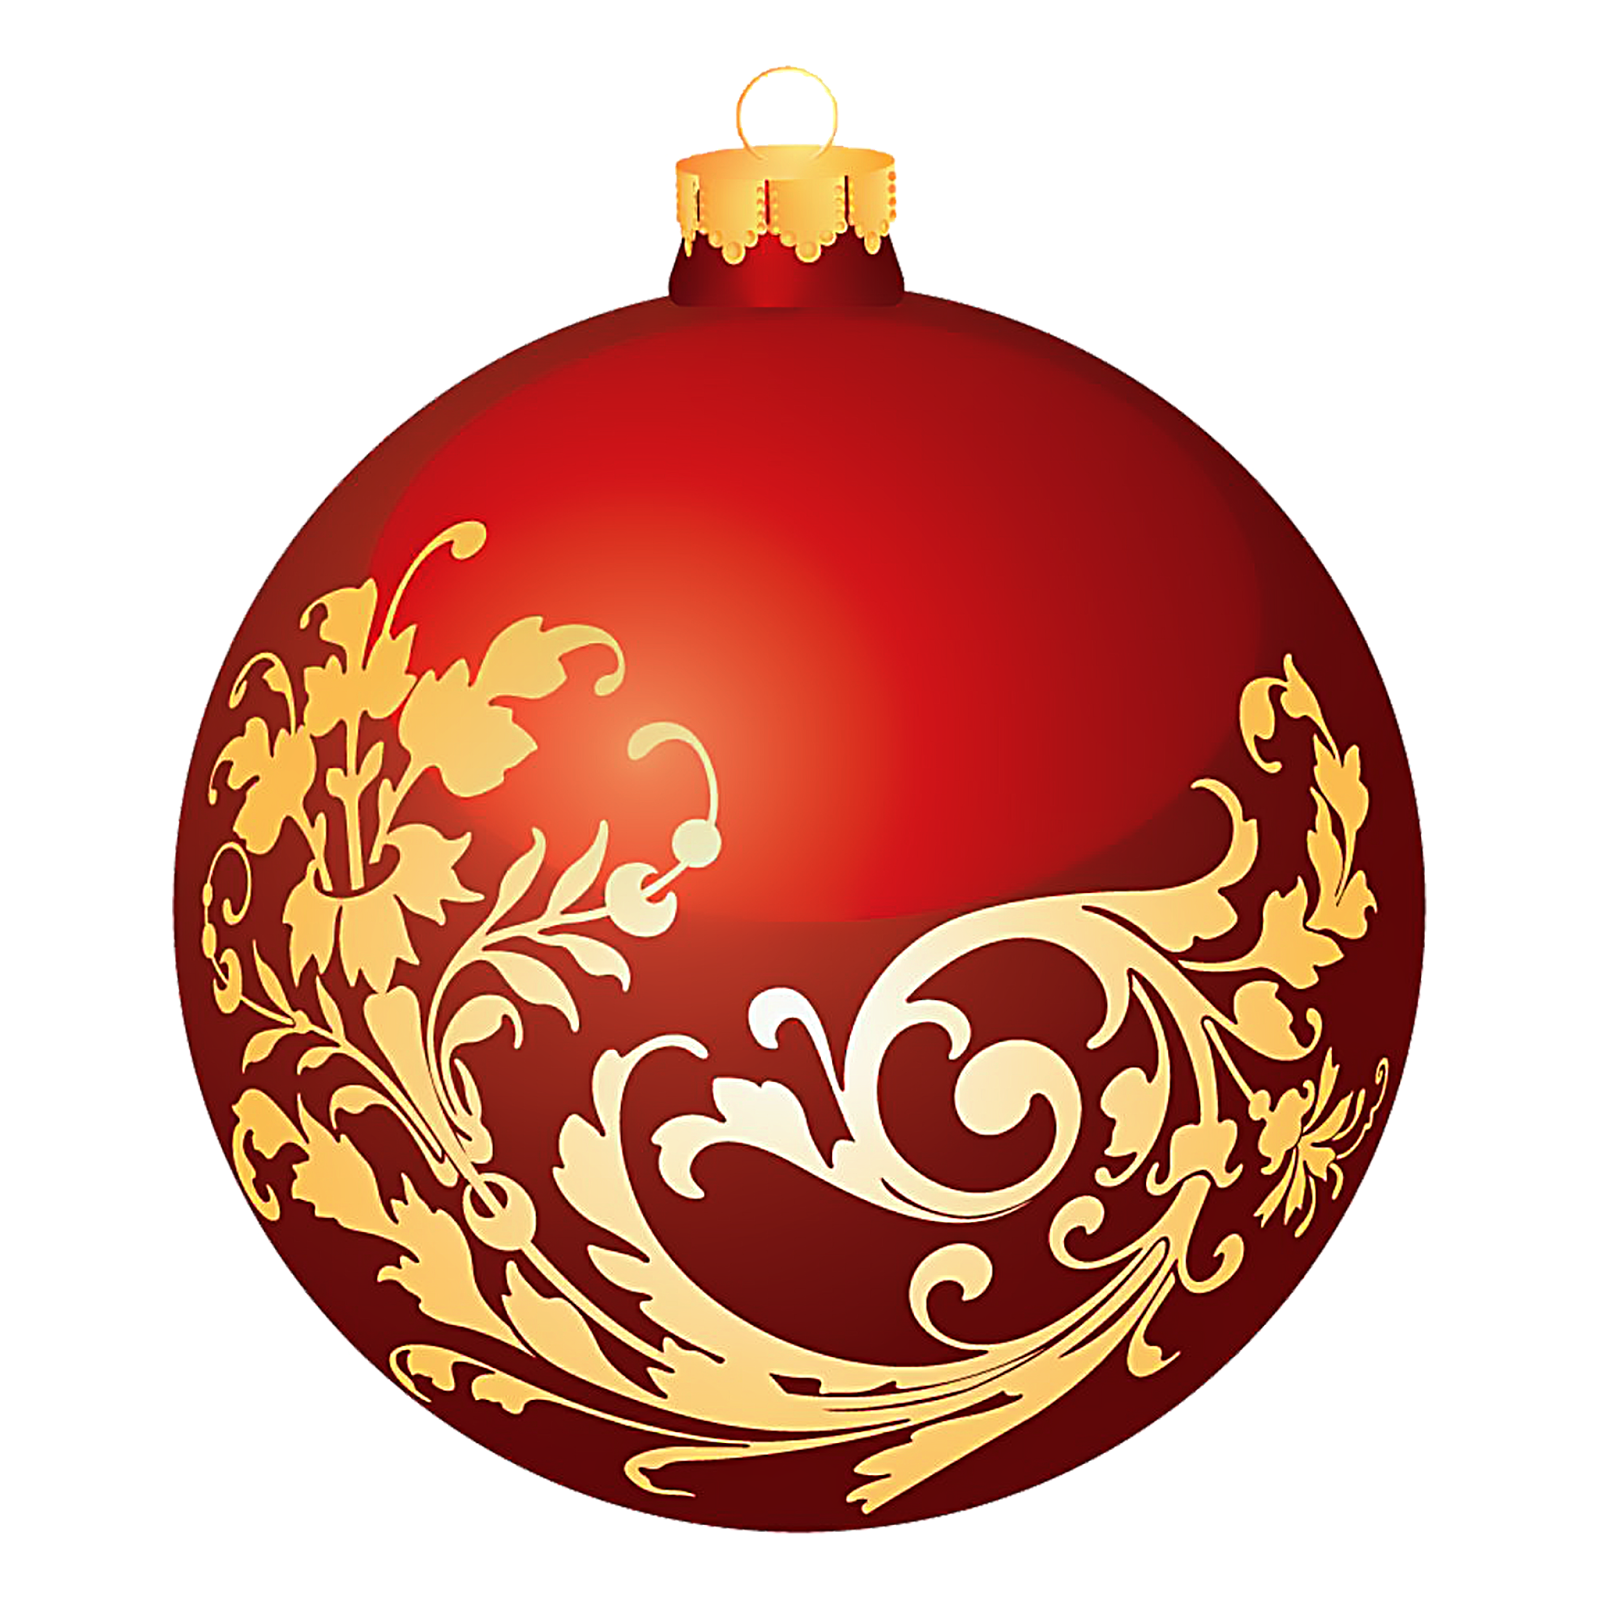 happy new year: Free Christmas Clip Arts Images in High Resolution.